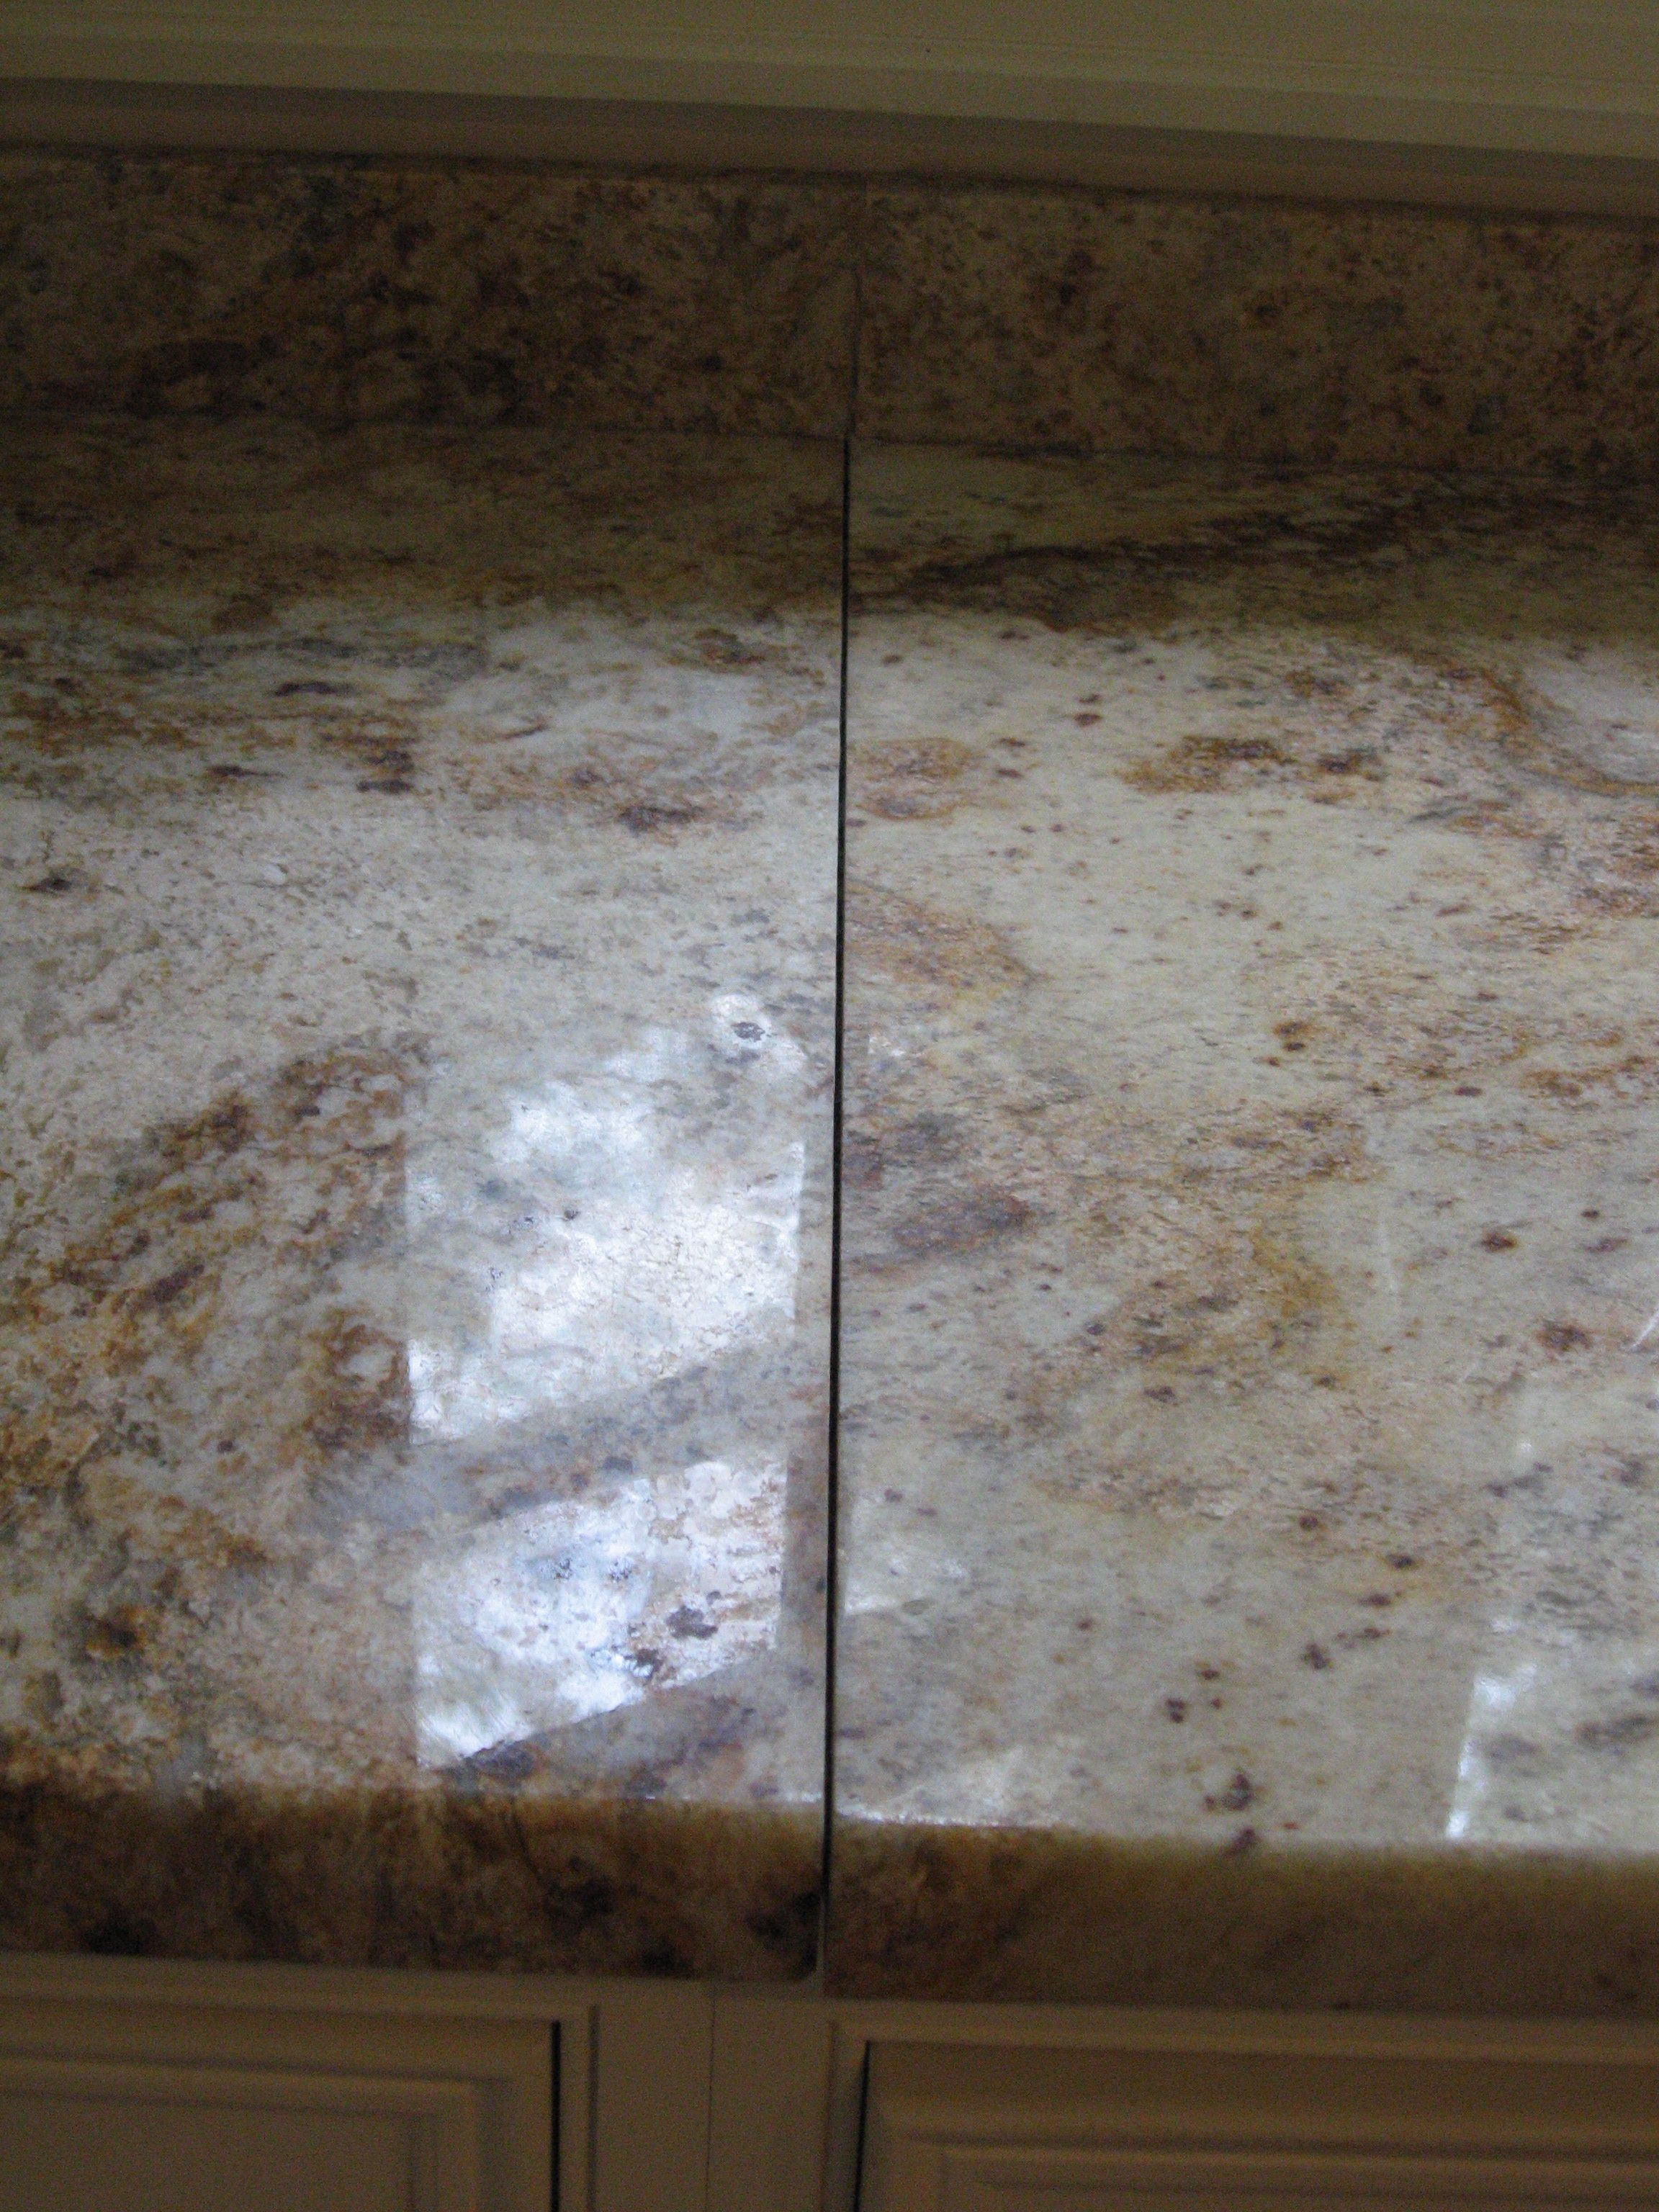 This Kitchen Granite Counter Top Had A Broken And Loose Seam With